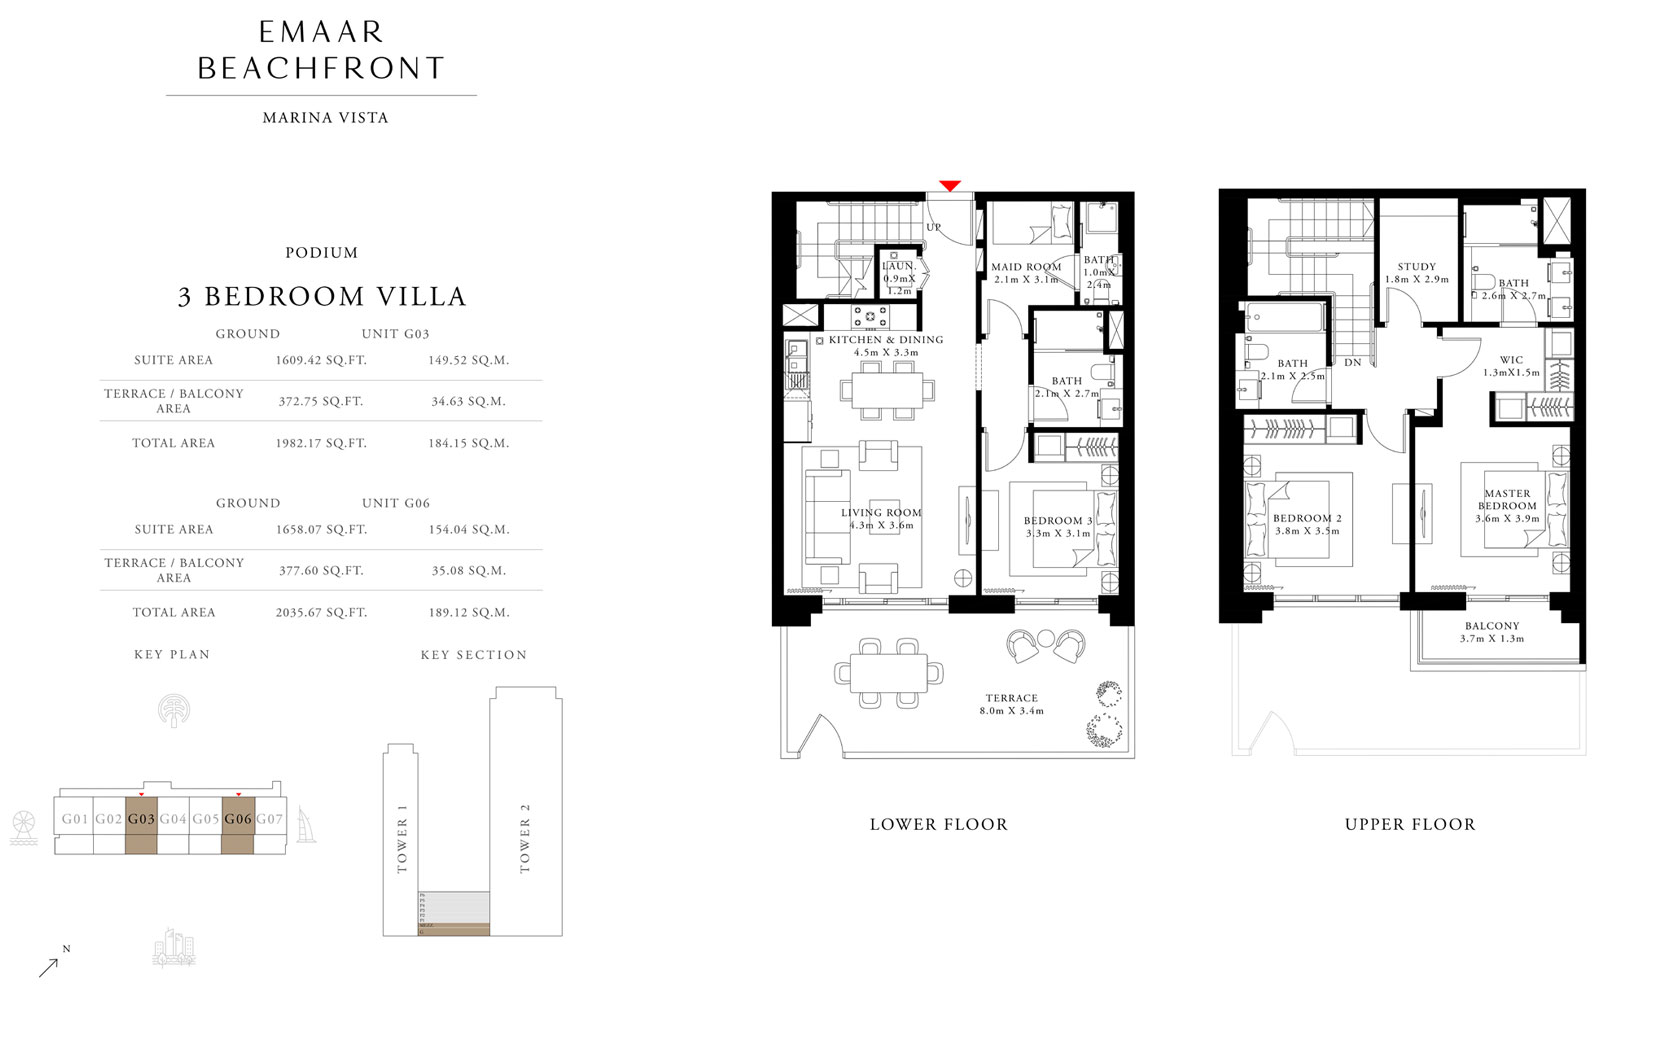 3 Bedroom Villa, Podium, Ground, Unit G03 & G06, Size 1982.17 & 2035.67 Sq Ft